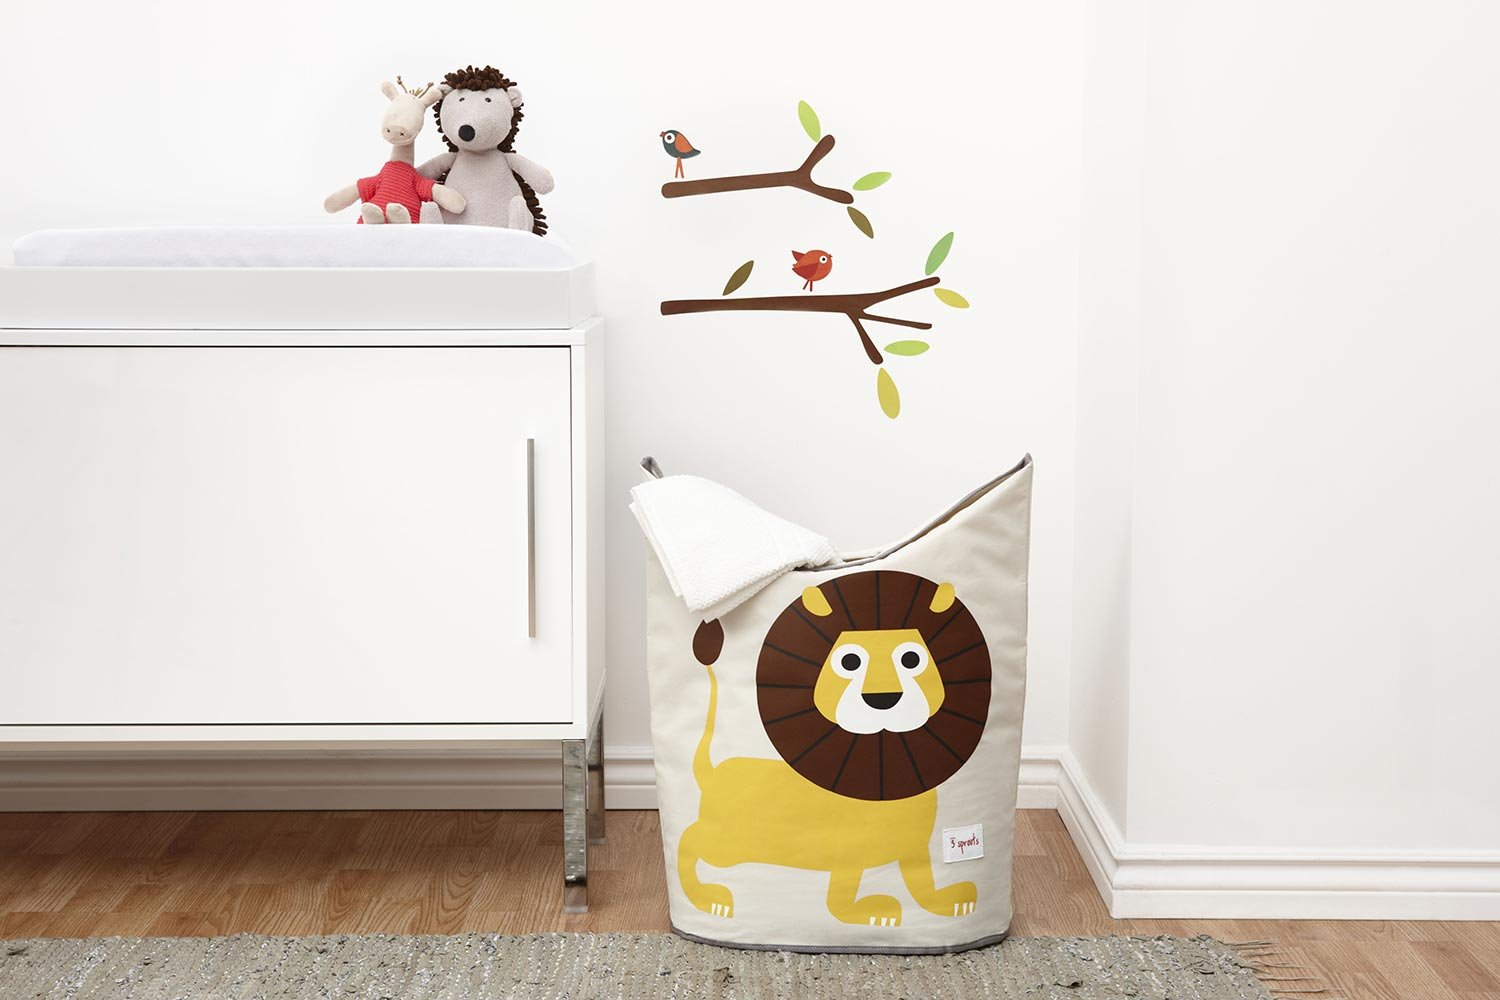 3 Sprouts Laundry Hamper – Baby Storage Basket Organizer Bin for Nursery Clothes by 3 Sprouts (Image #3)